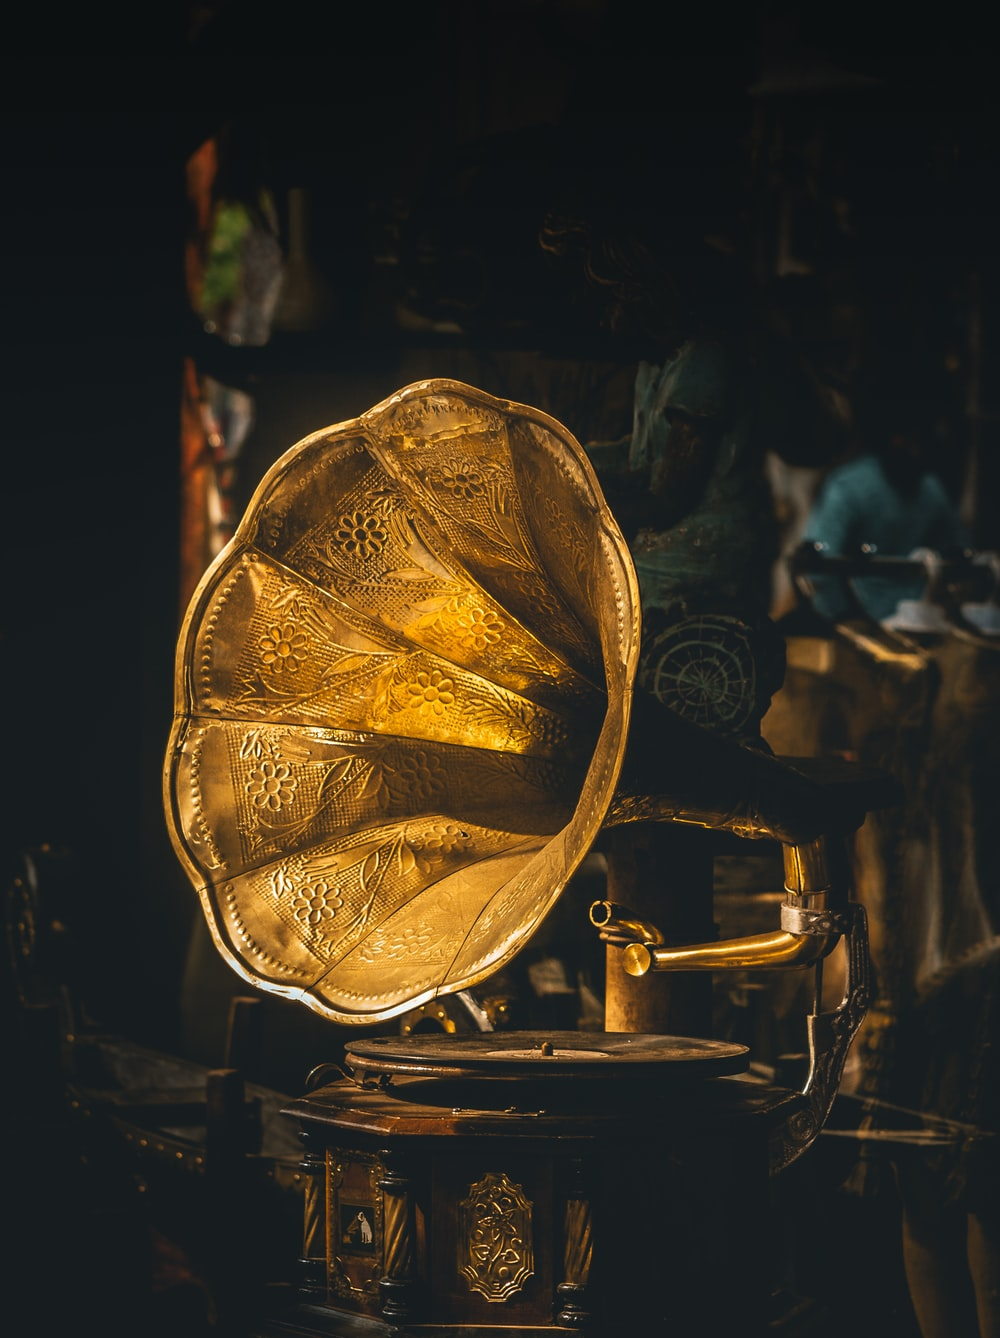 closeup photo of gramophone